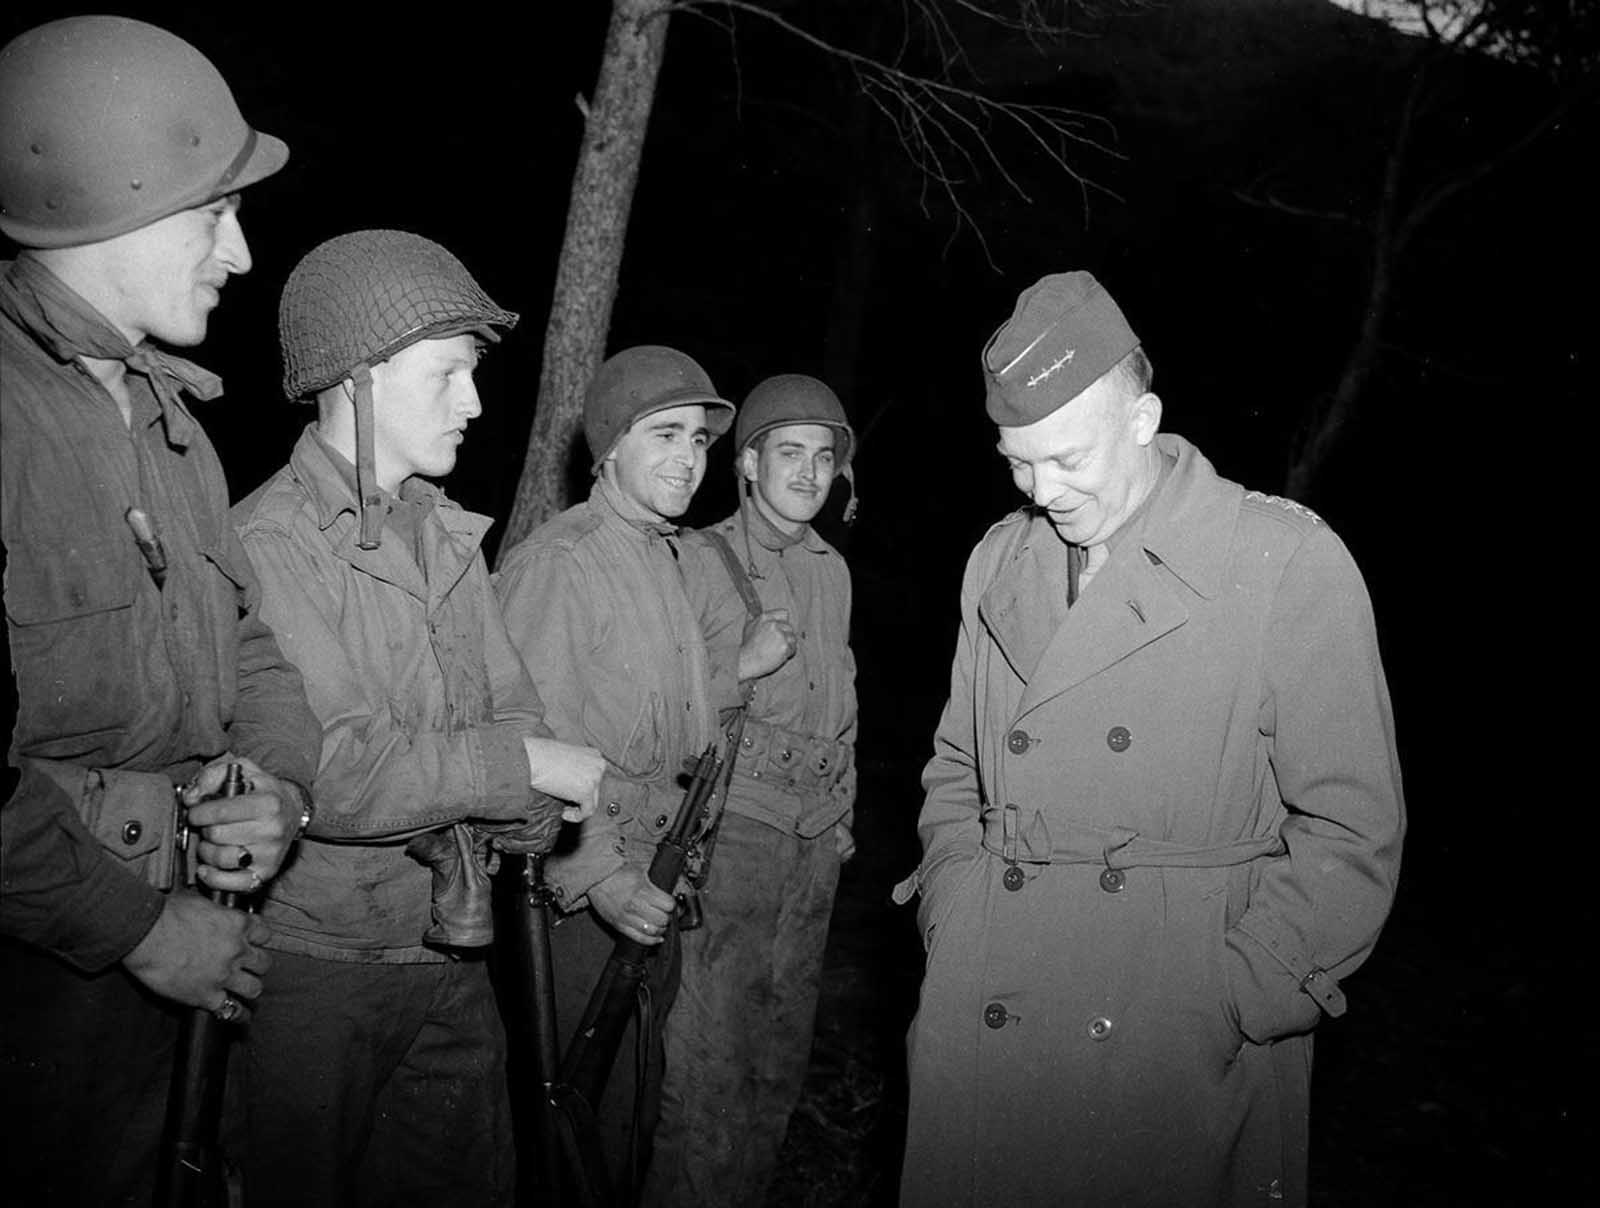 General Dwight D. Eisenhower, right, commander-in-chief in North Africa, jokes with four American soldiers during a recent inspection of the Tunisian battlefront, on March 18, 1943.